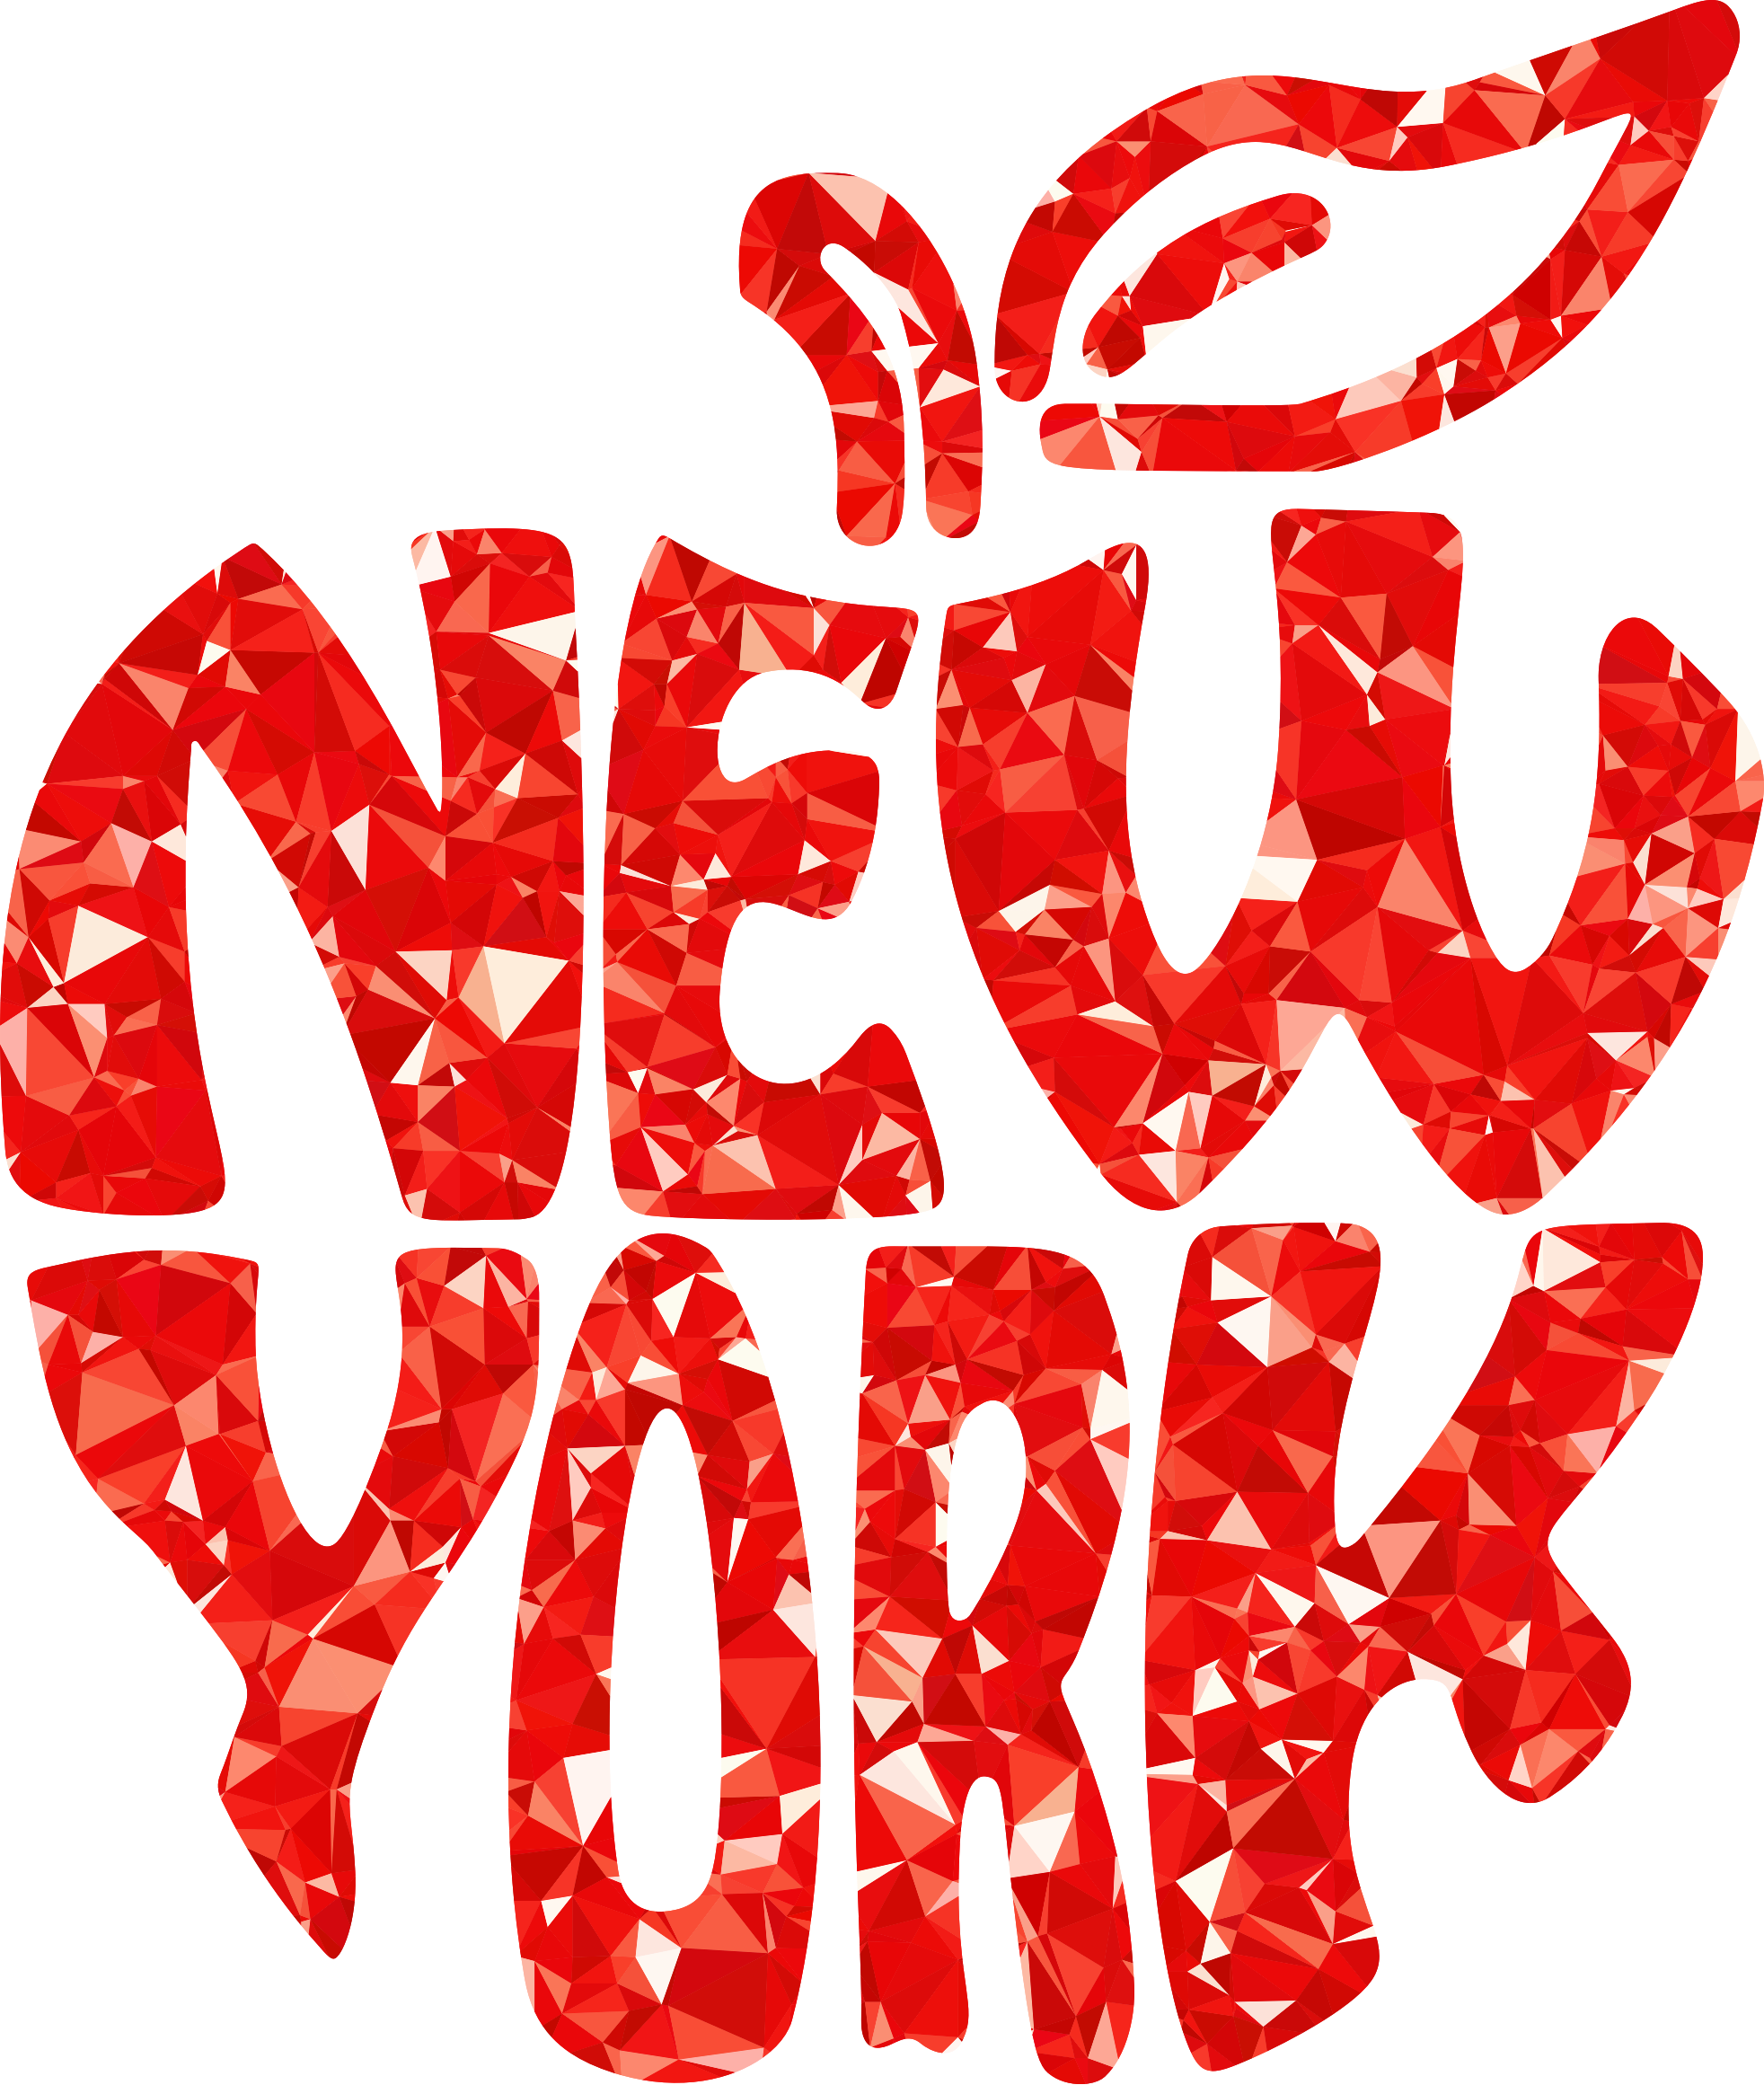 Big apple clipart vector freeuse stock Clipart - Ruby New York Big Apple vector freeuse stock